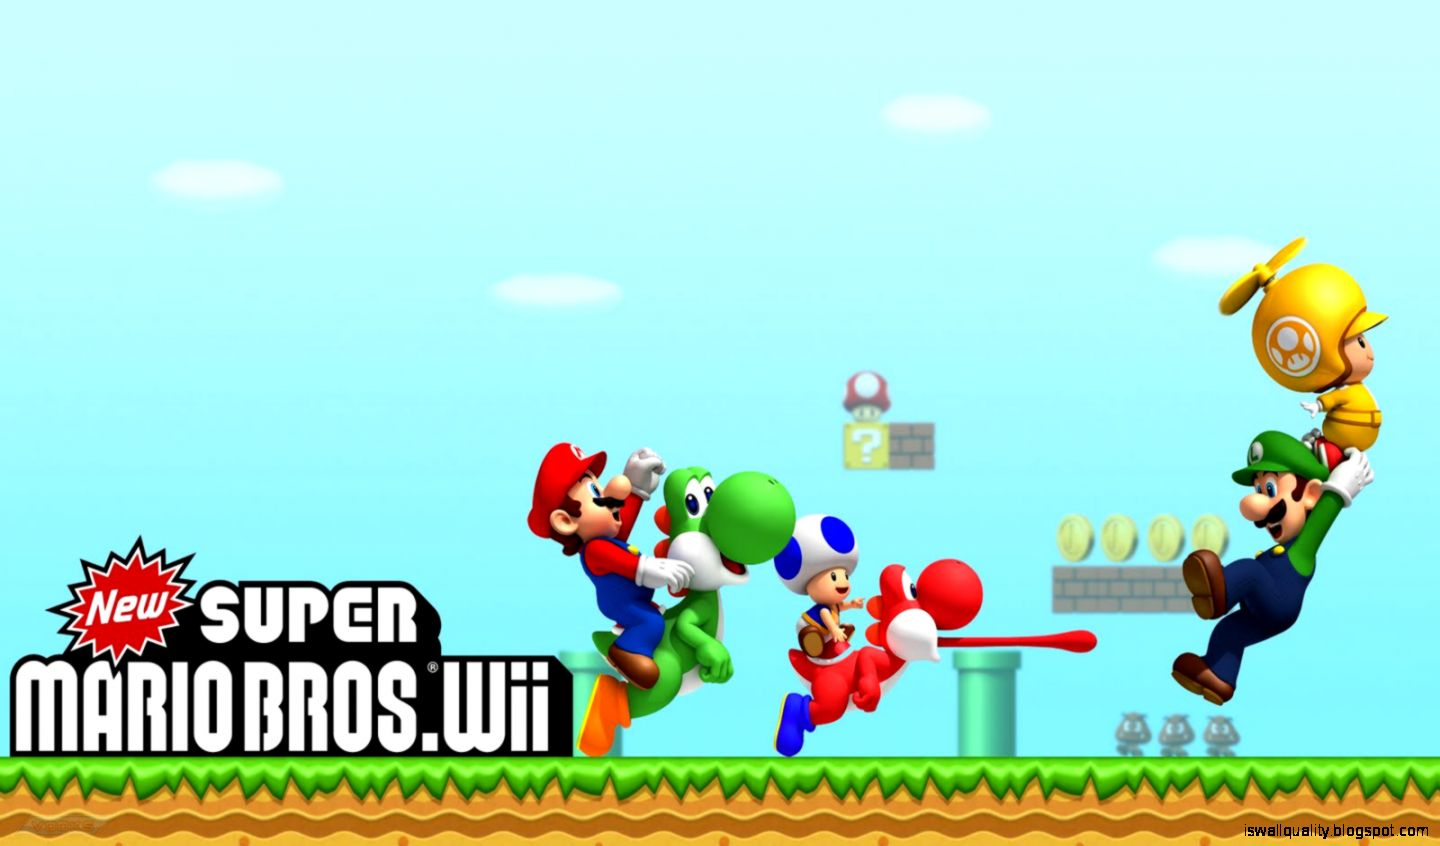 Super Mario Bros Hd Wallpaper Wallpapers Quality